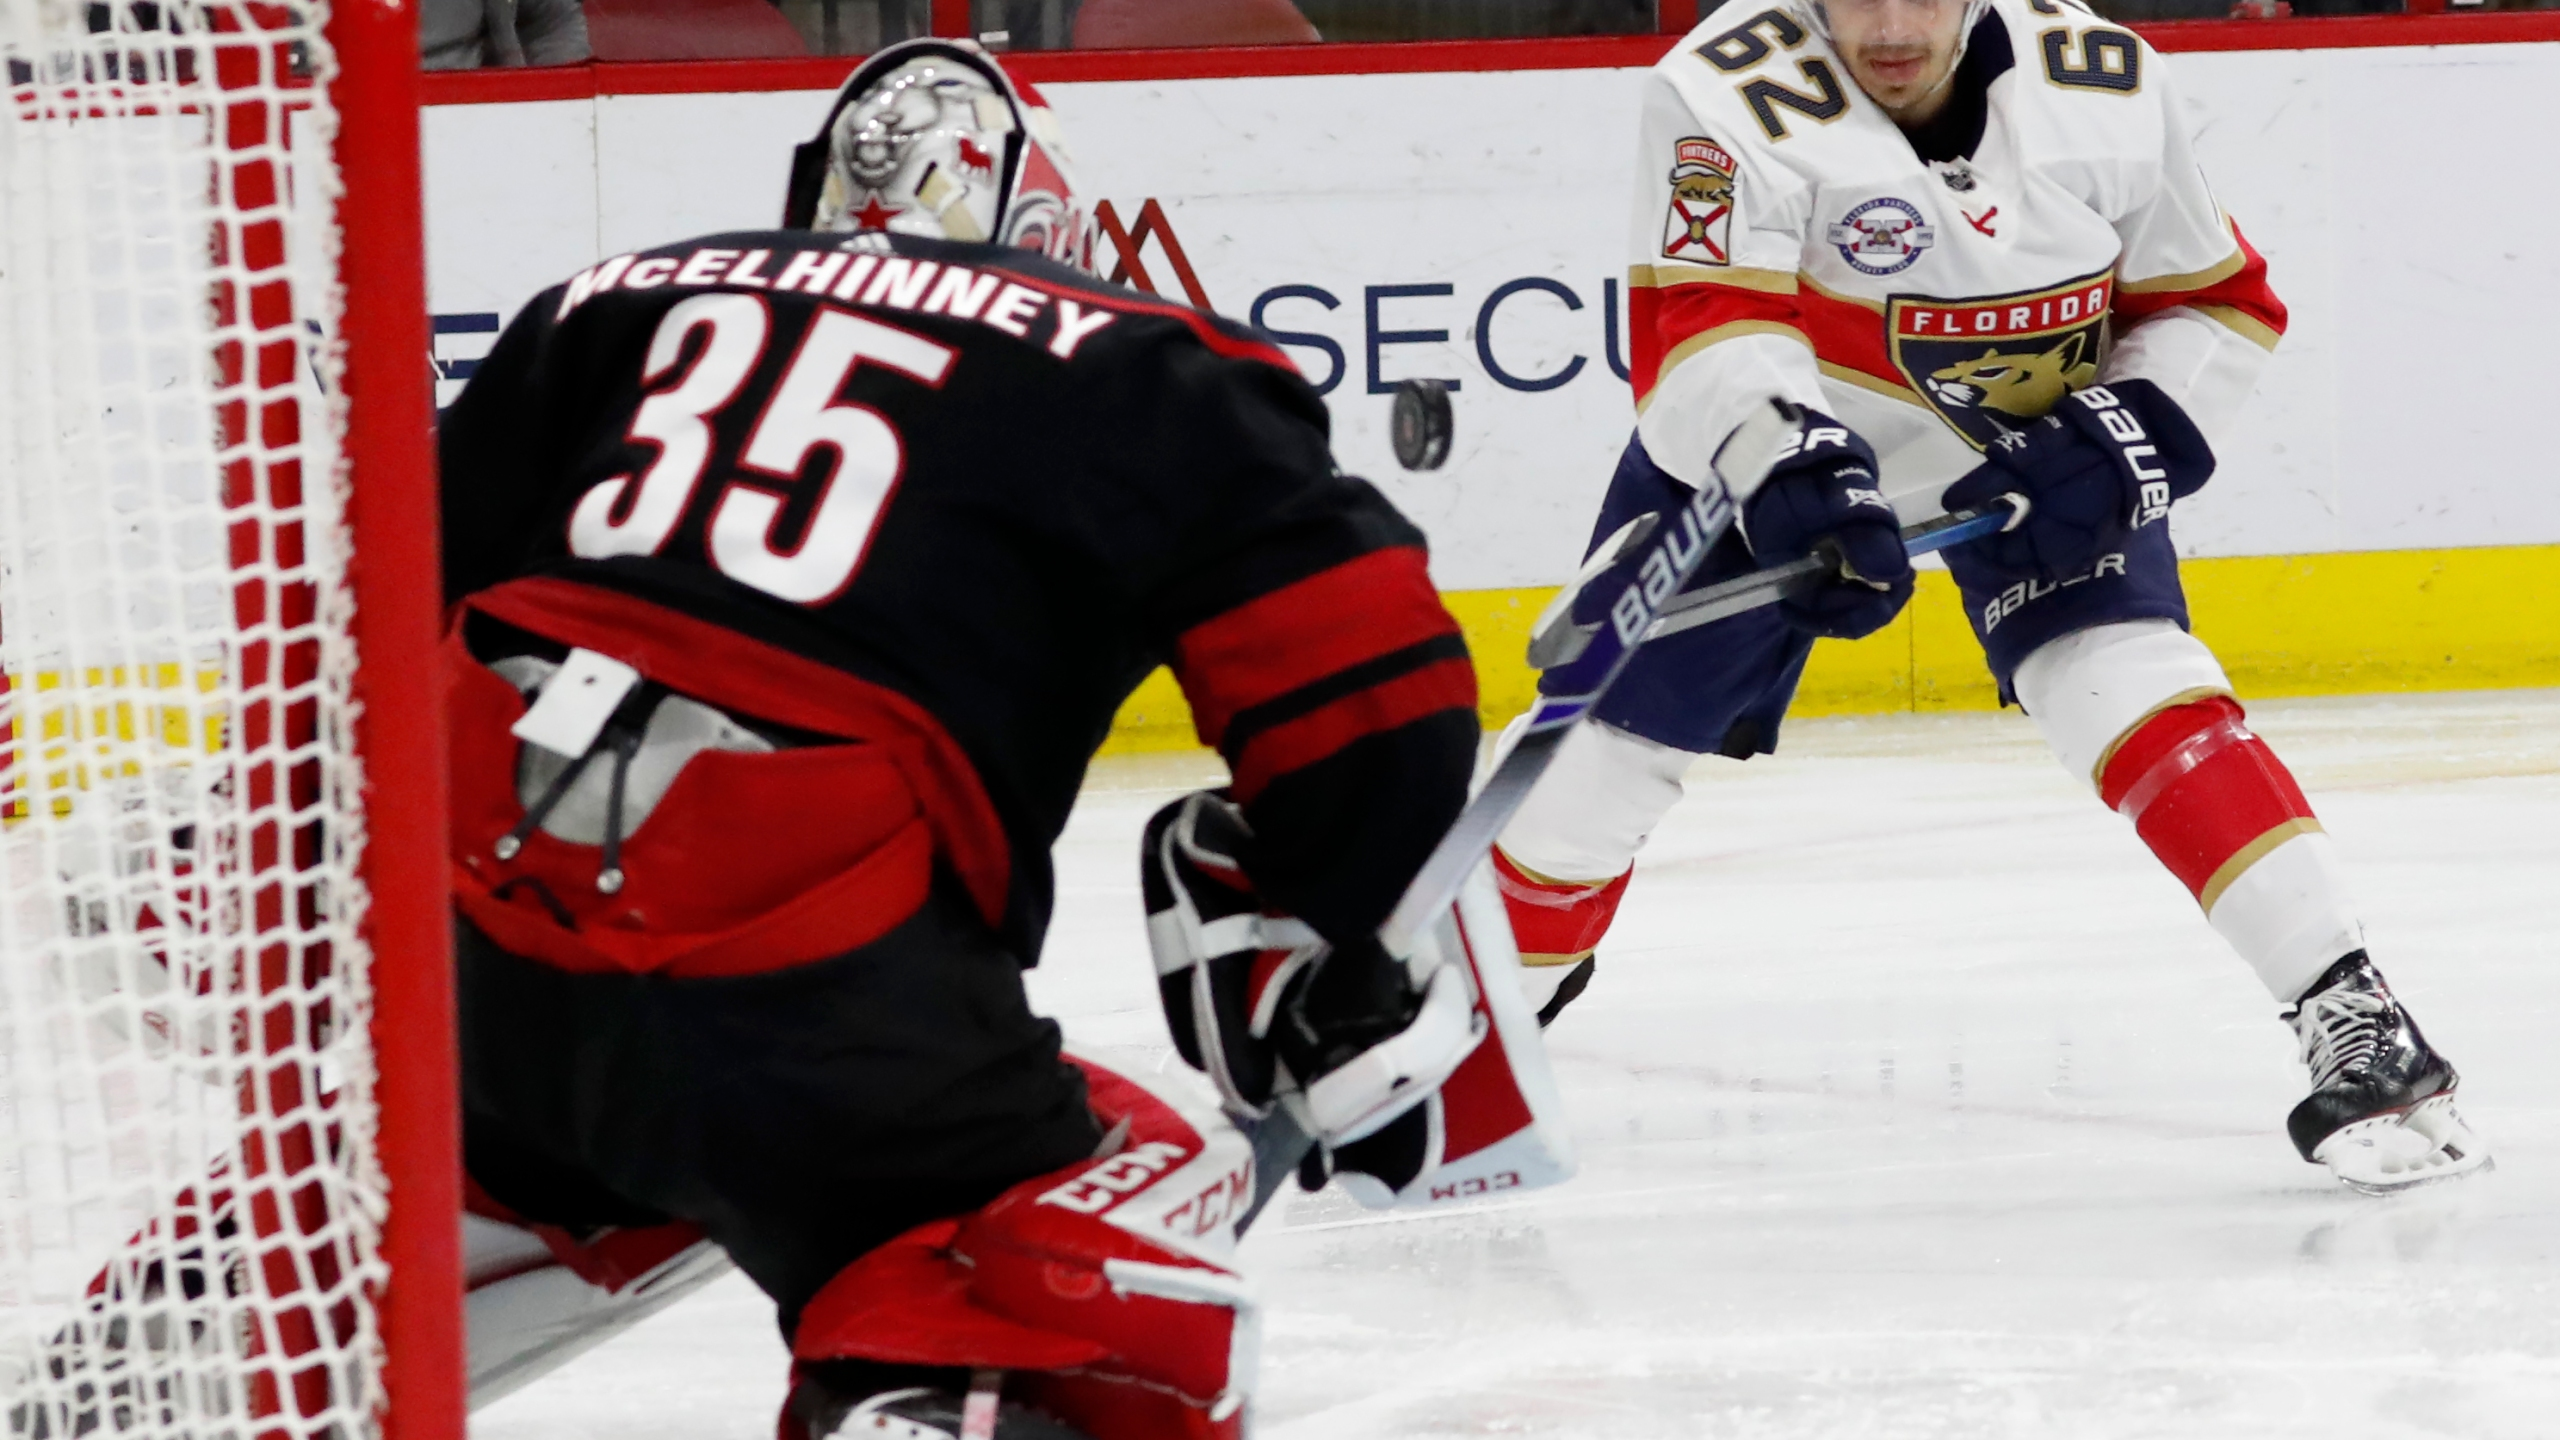 Panthers Hurricanes Hockey_1543892936823